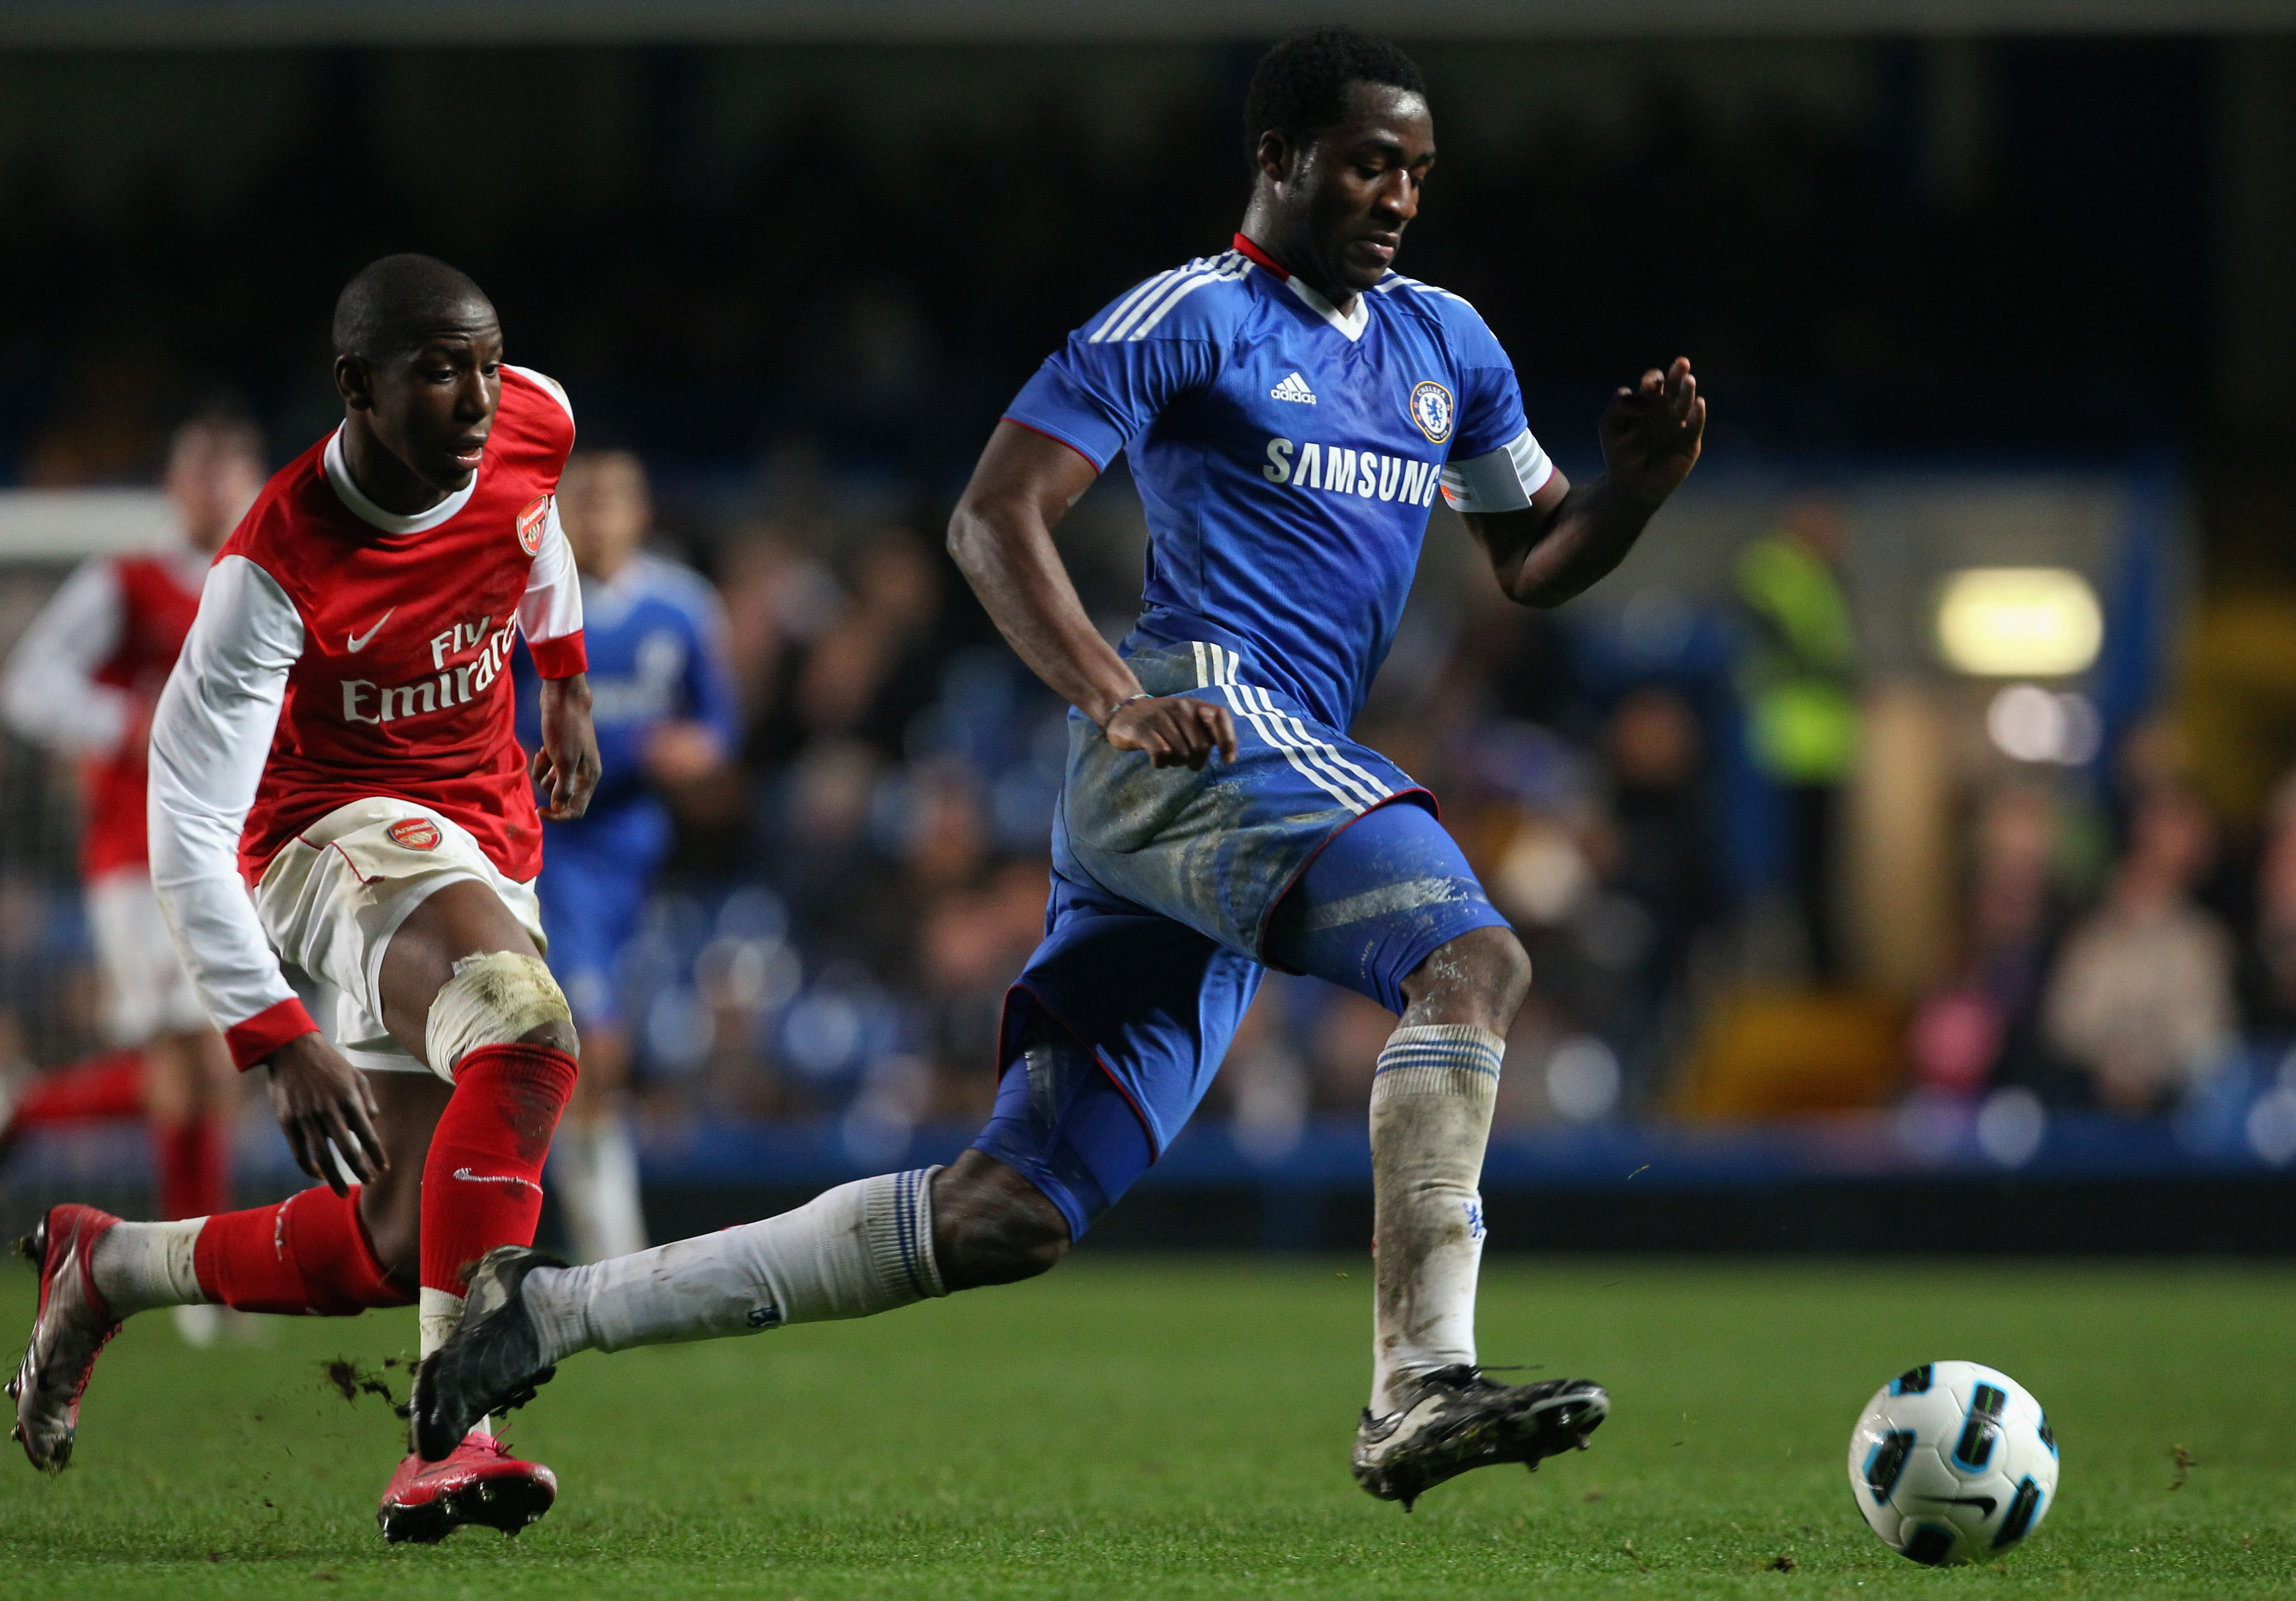 LONDON, ENGLAND - JANUARY 20: Daniel Pappoe of Chelsea in action during the FA Youth Cup match between Chelsea and Arsenal at Stamford Bridge on January 20, 2011 in London, England.  (Photo by Clive Rose/Getty Images)